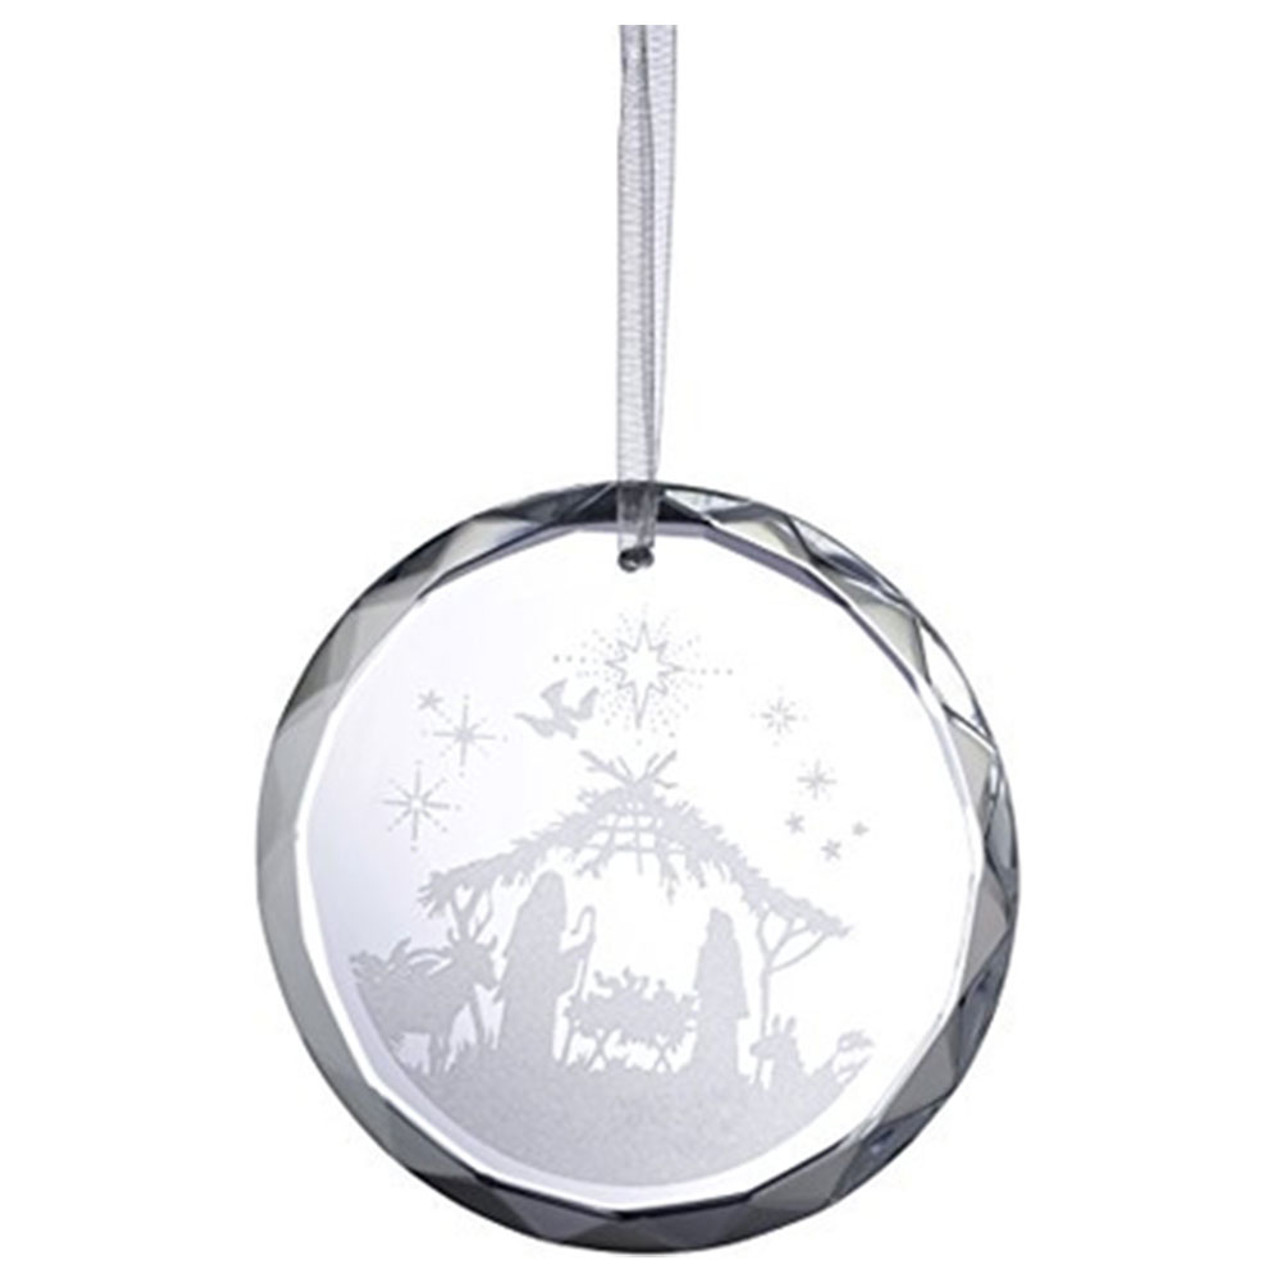 Etched Crystal Nativity Ornament from Galway